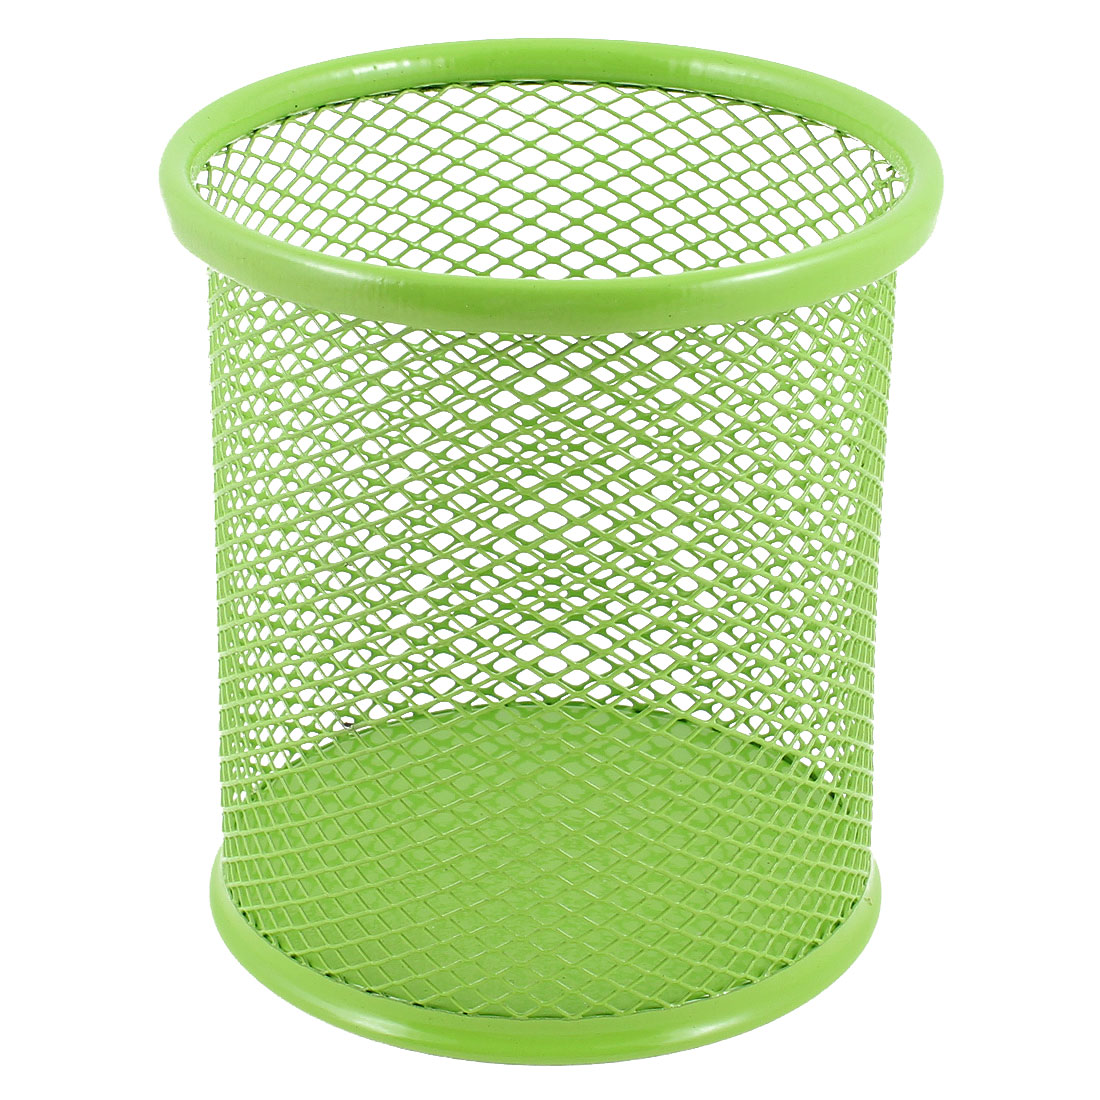 Metal Mesh Cylinder Pen Pencil Eraser Stationery Holder Container Green